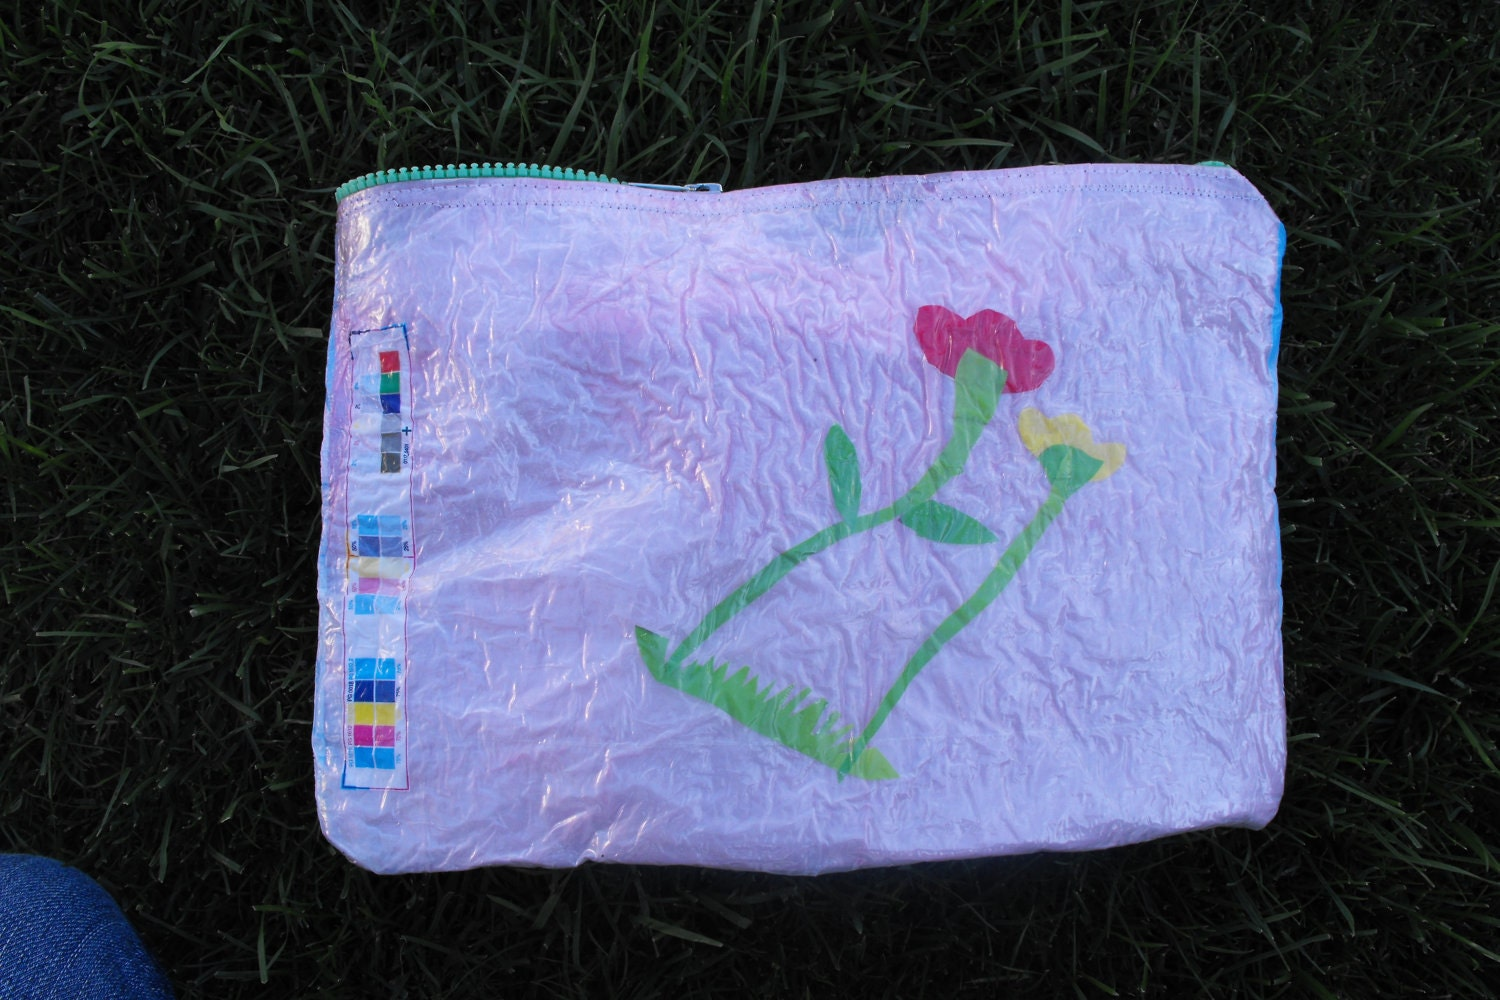 Wet Bag - 100% Recycled Materials